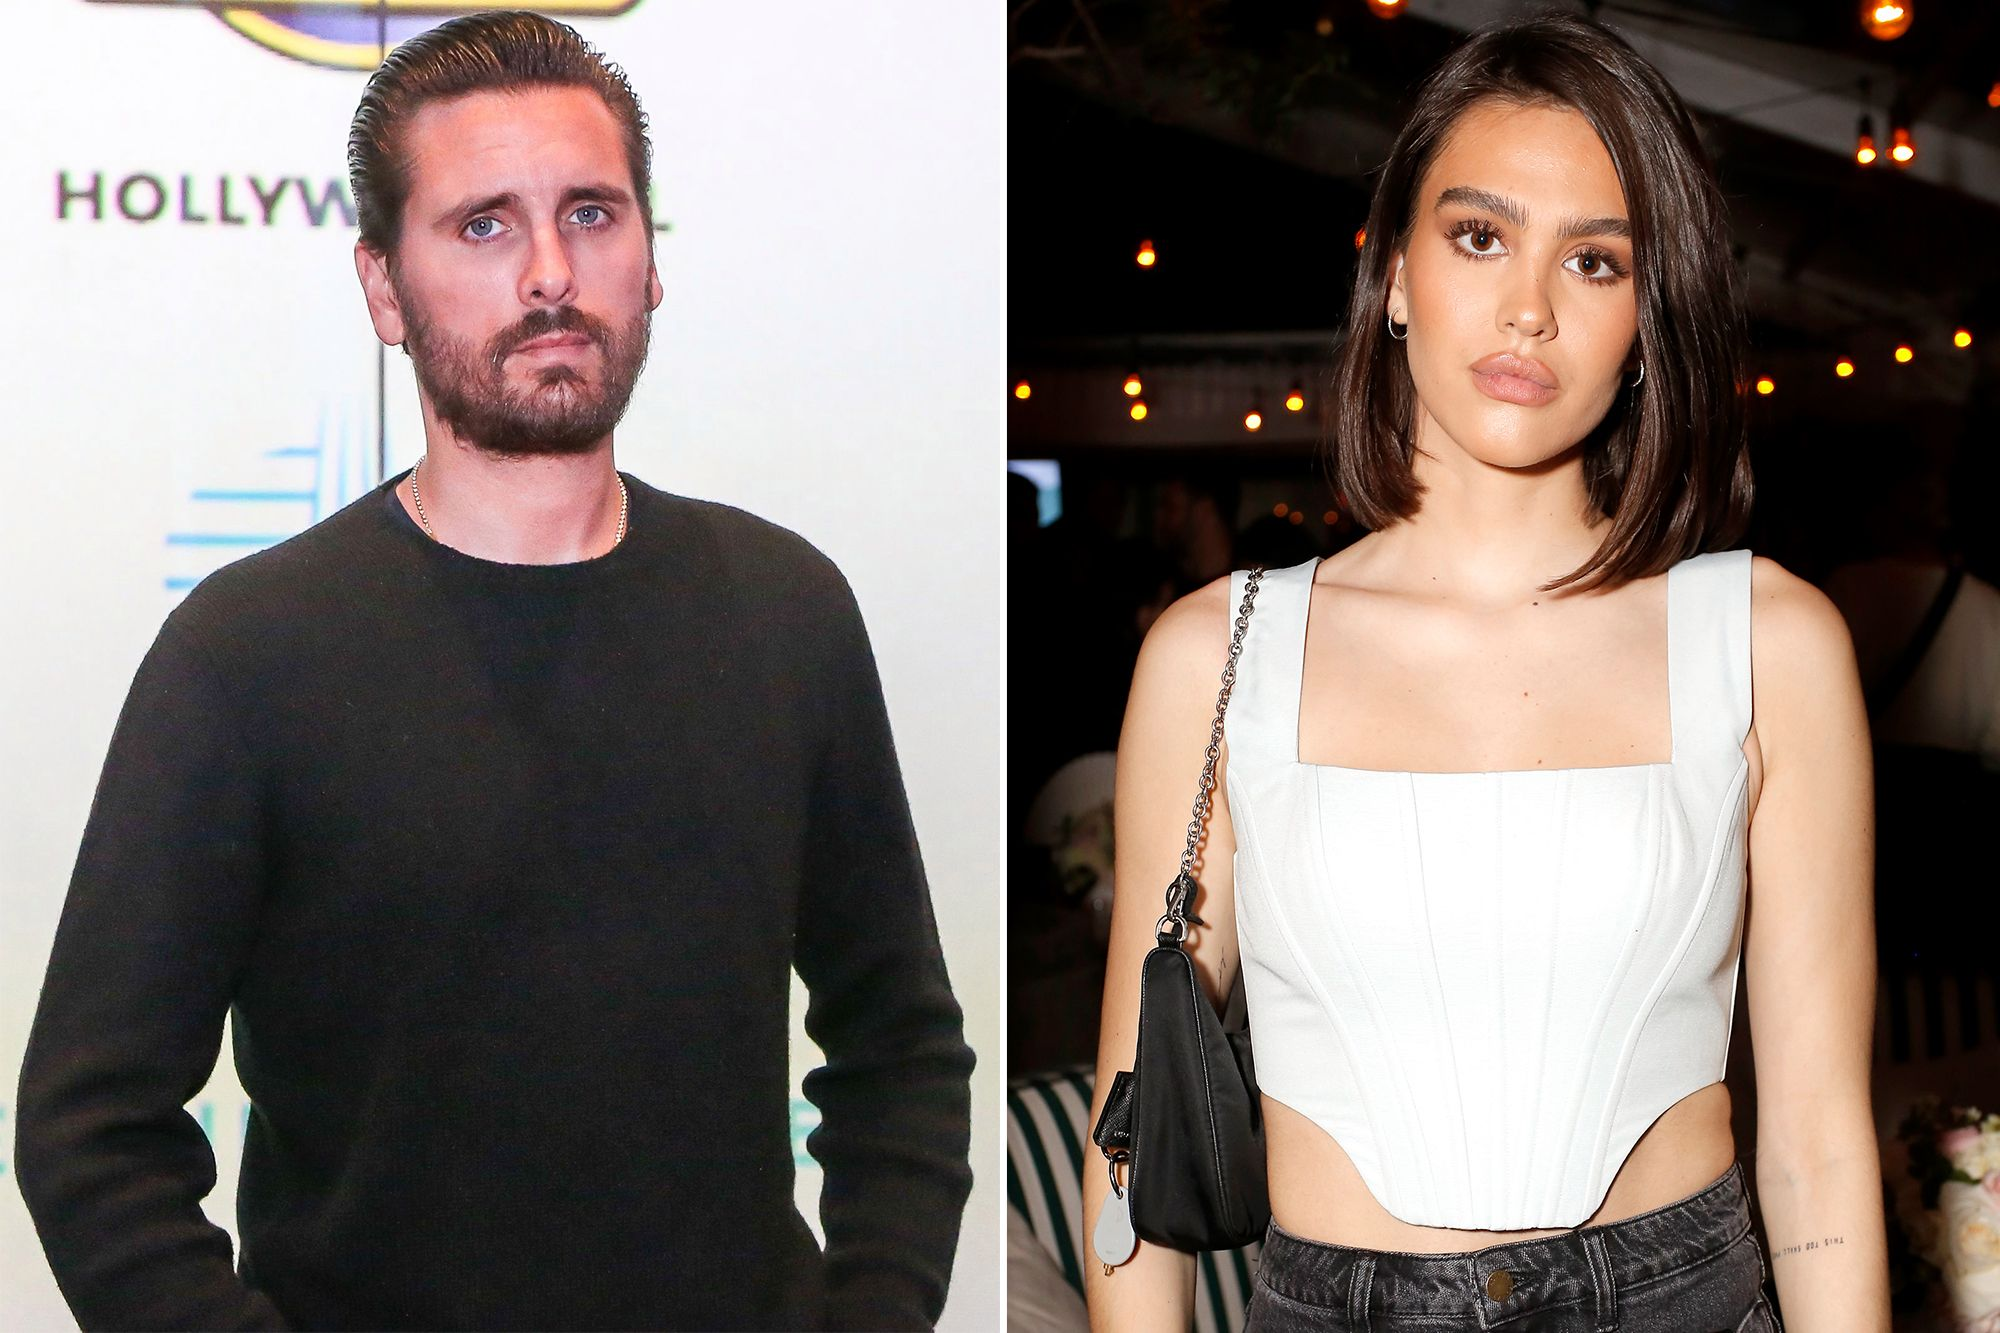 Scott Disick And Amelia Hamlin – Here's Why They Finally Made Their Romance Instagram Official!